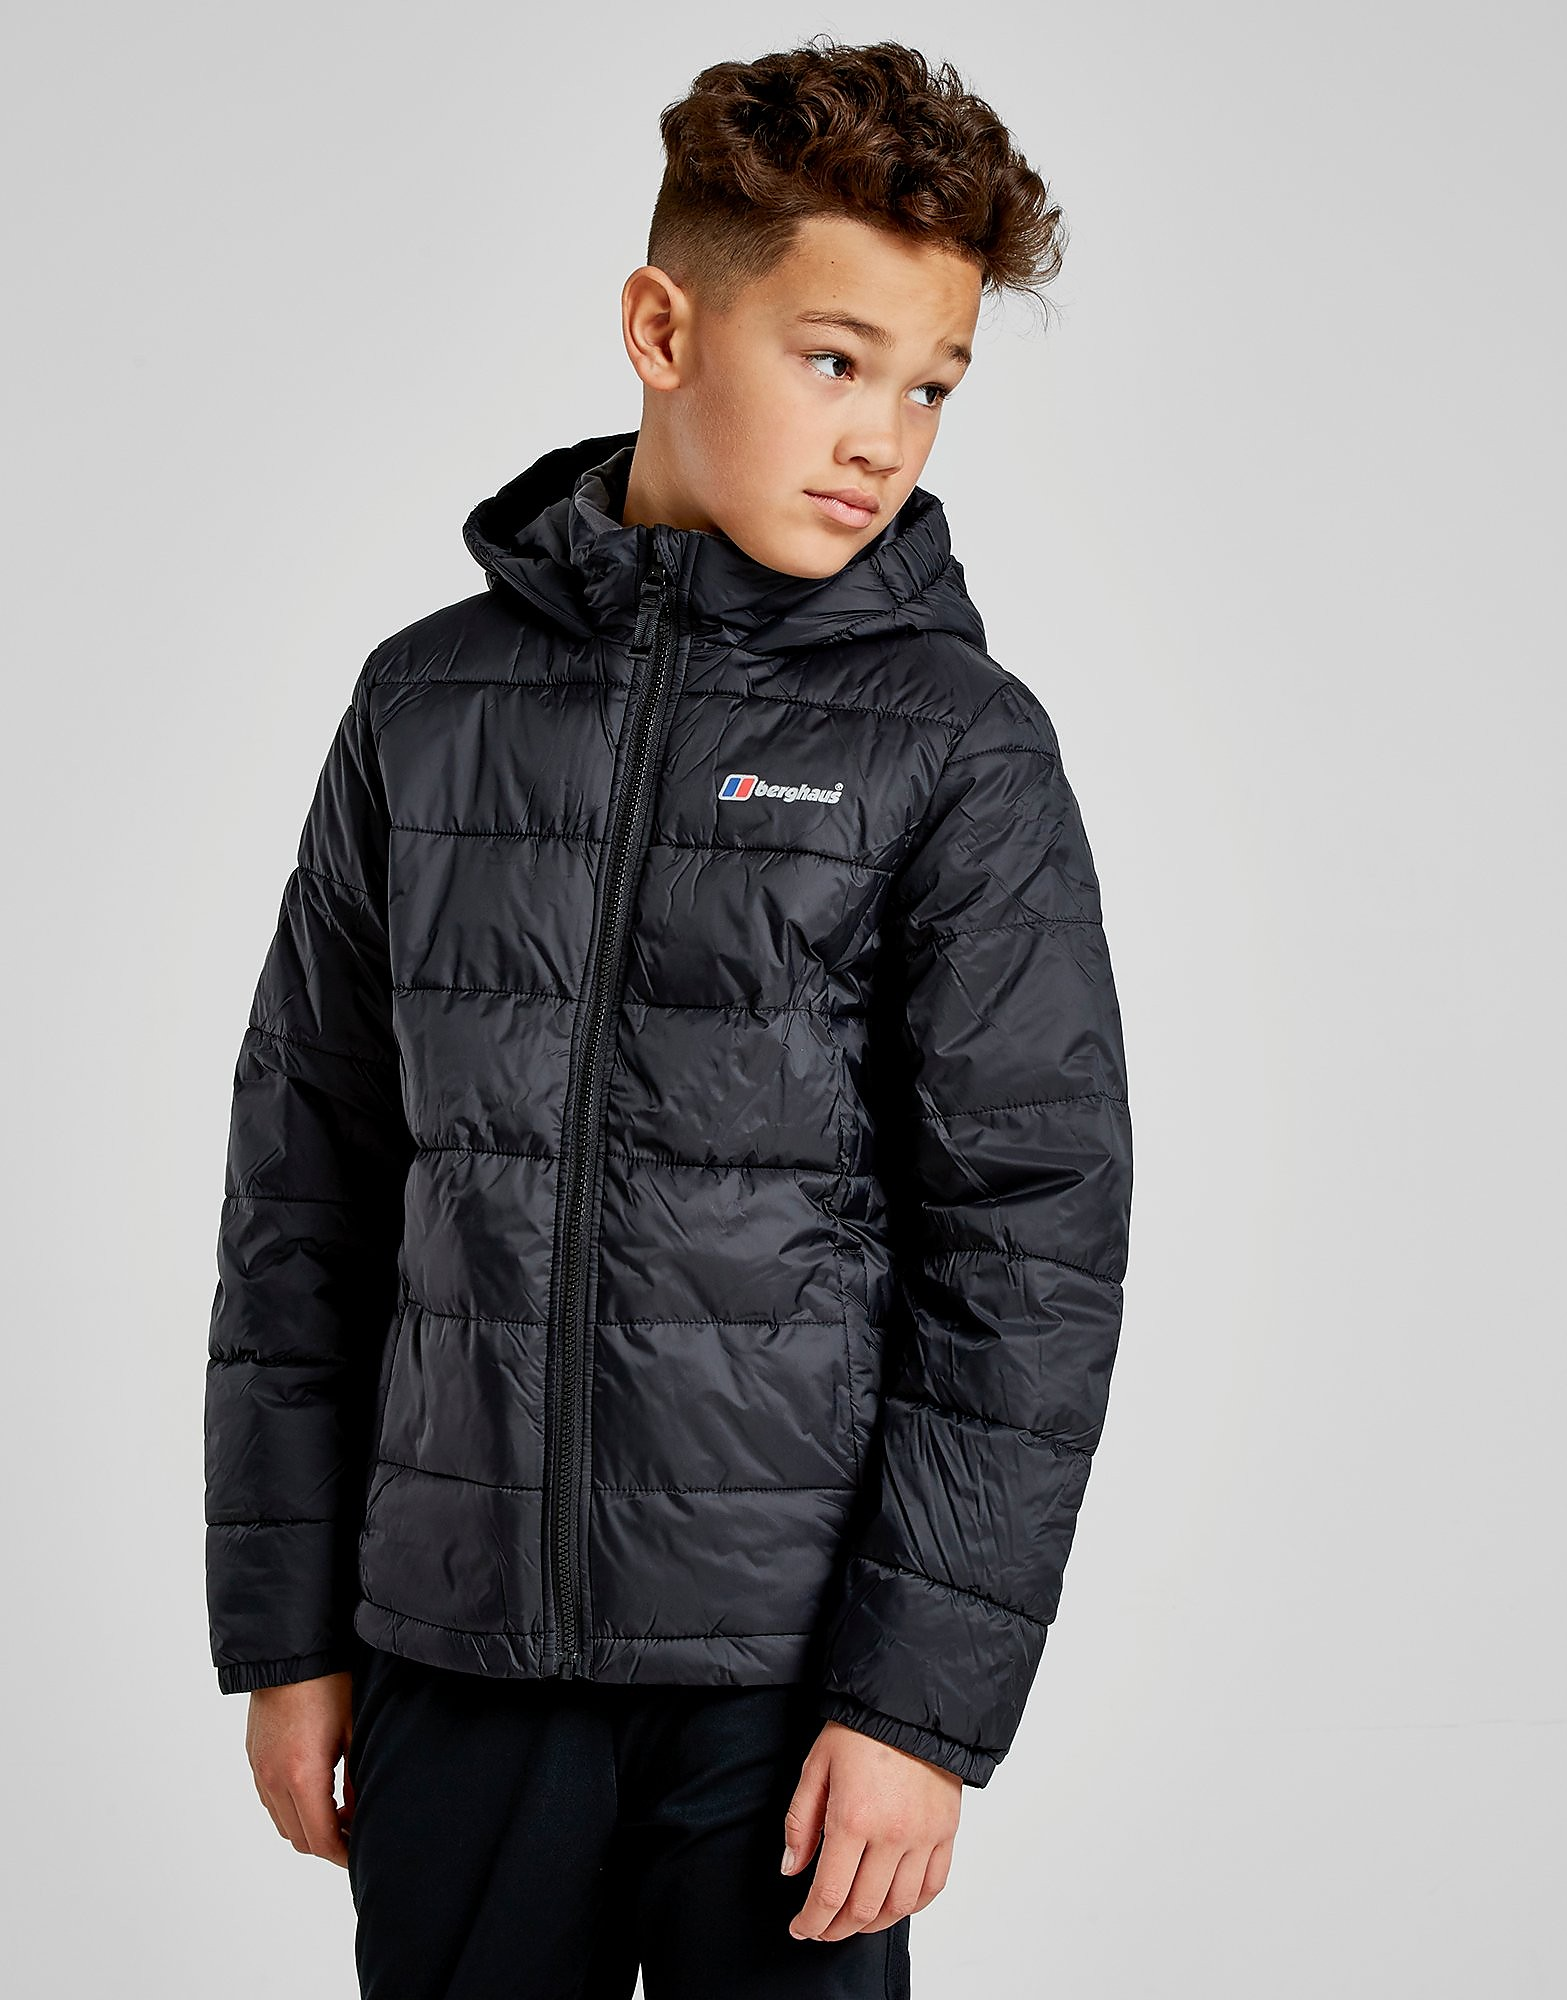 Berghaus Burham Insulated Jacket Junior